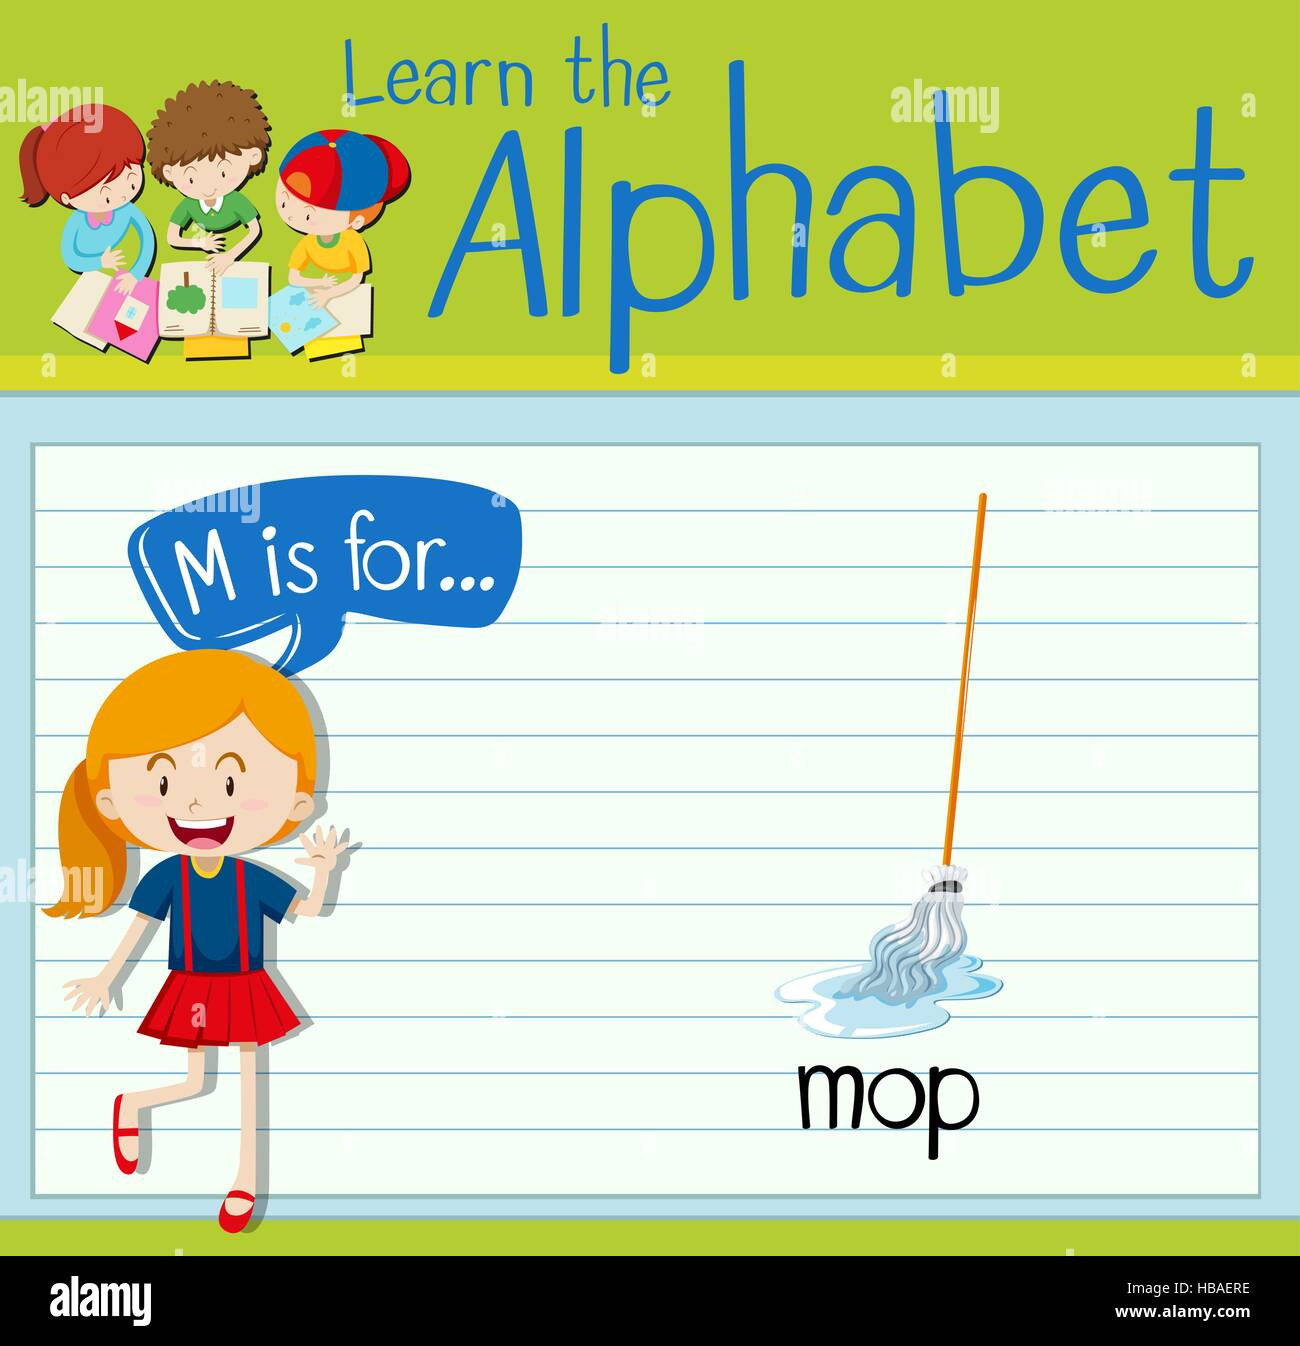 Flashcard letter M is for mop illustration - Stock Vector